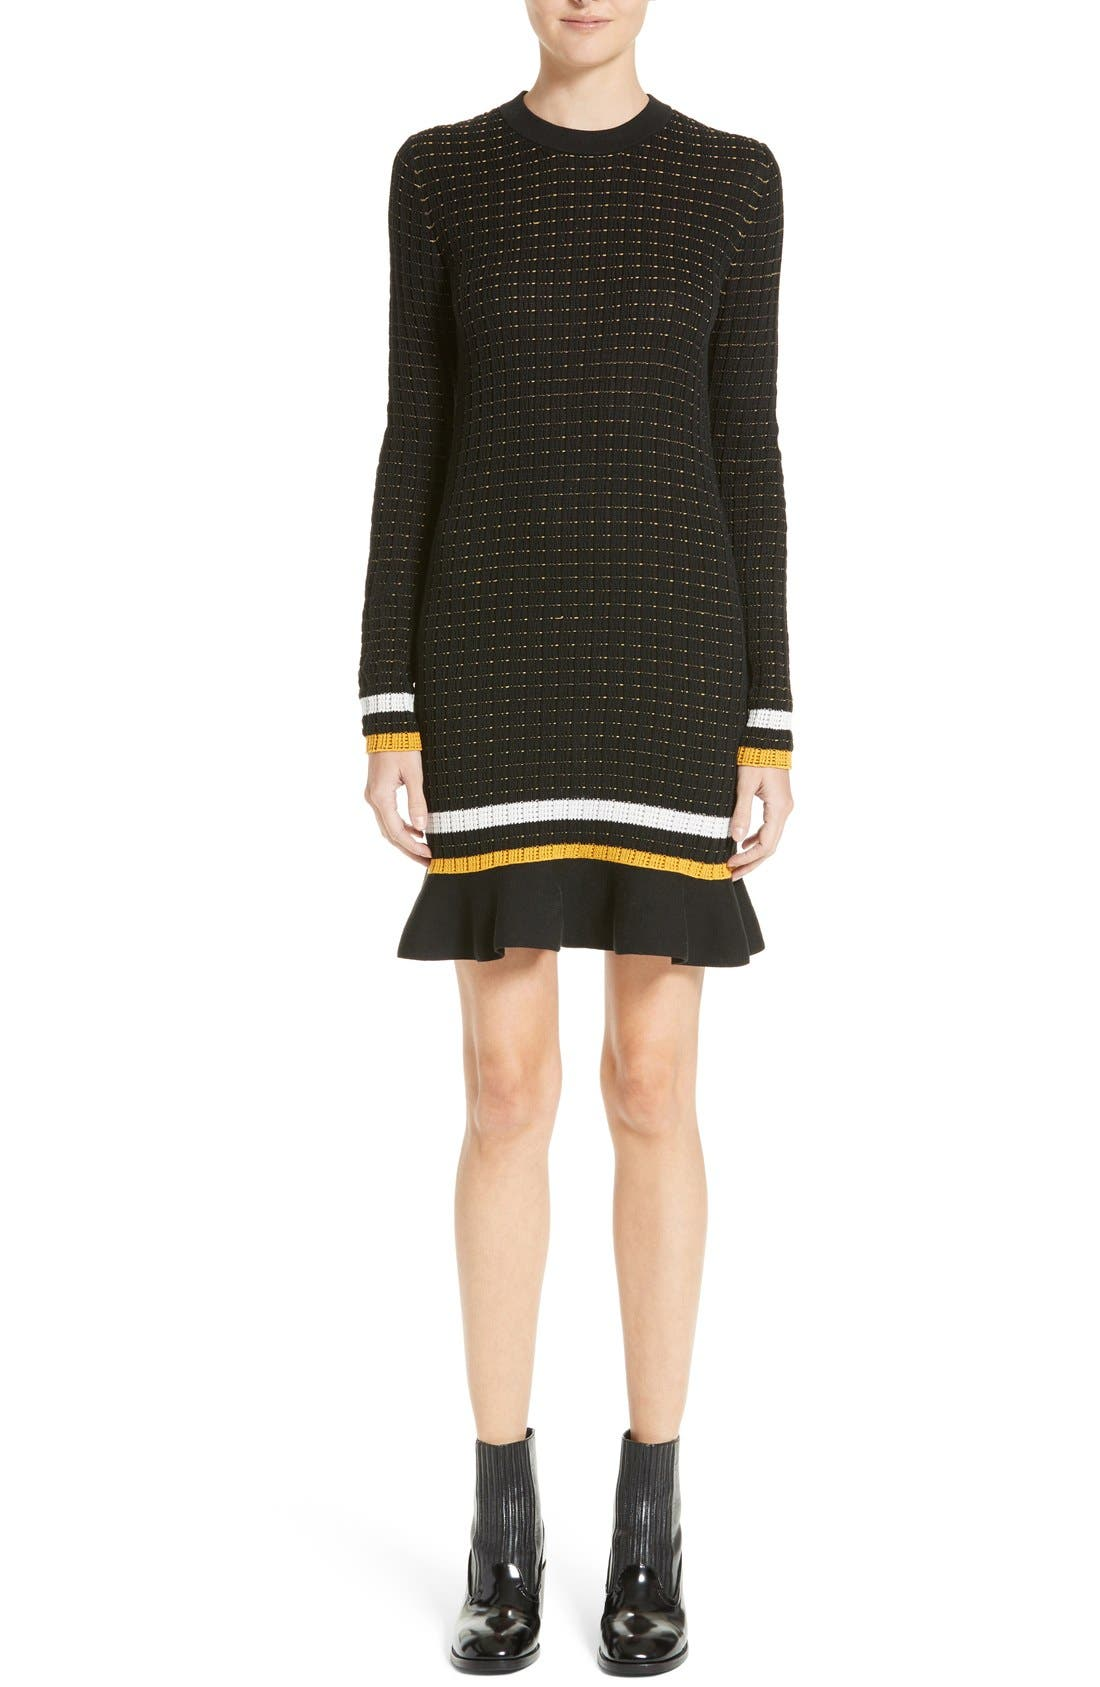 3.1 PHILLIP LIM Smocked Dress